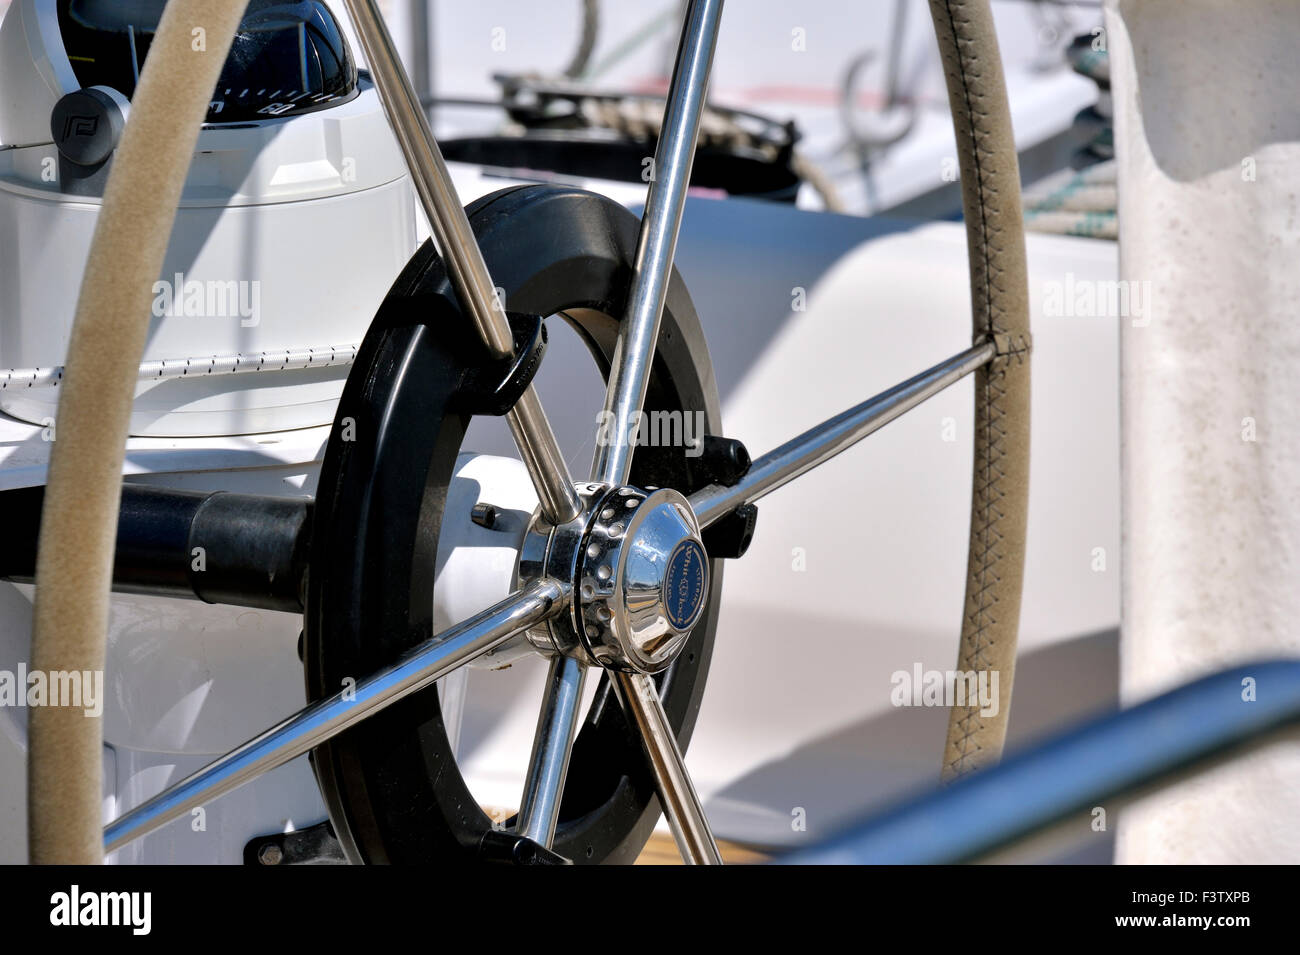 Steering wheel of sailing boat - Stock Image